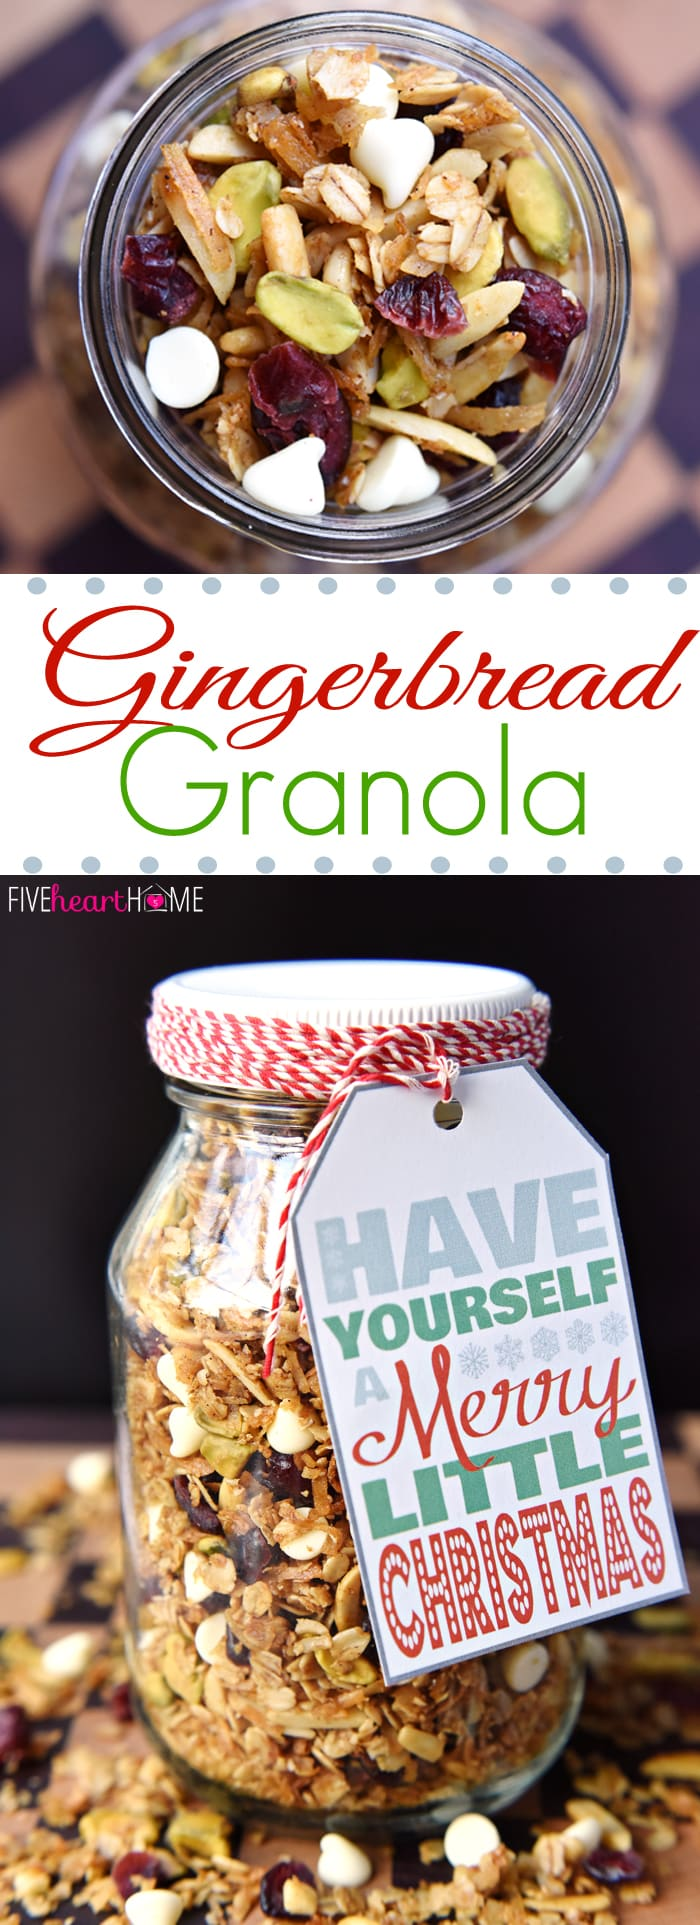 Gingerbread Granola with Dried Cranberries, Pistachios, and White Chocolate Chips | FiveHeartHome.com